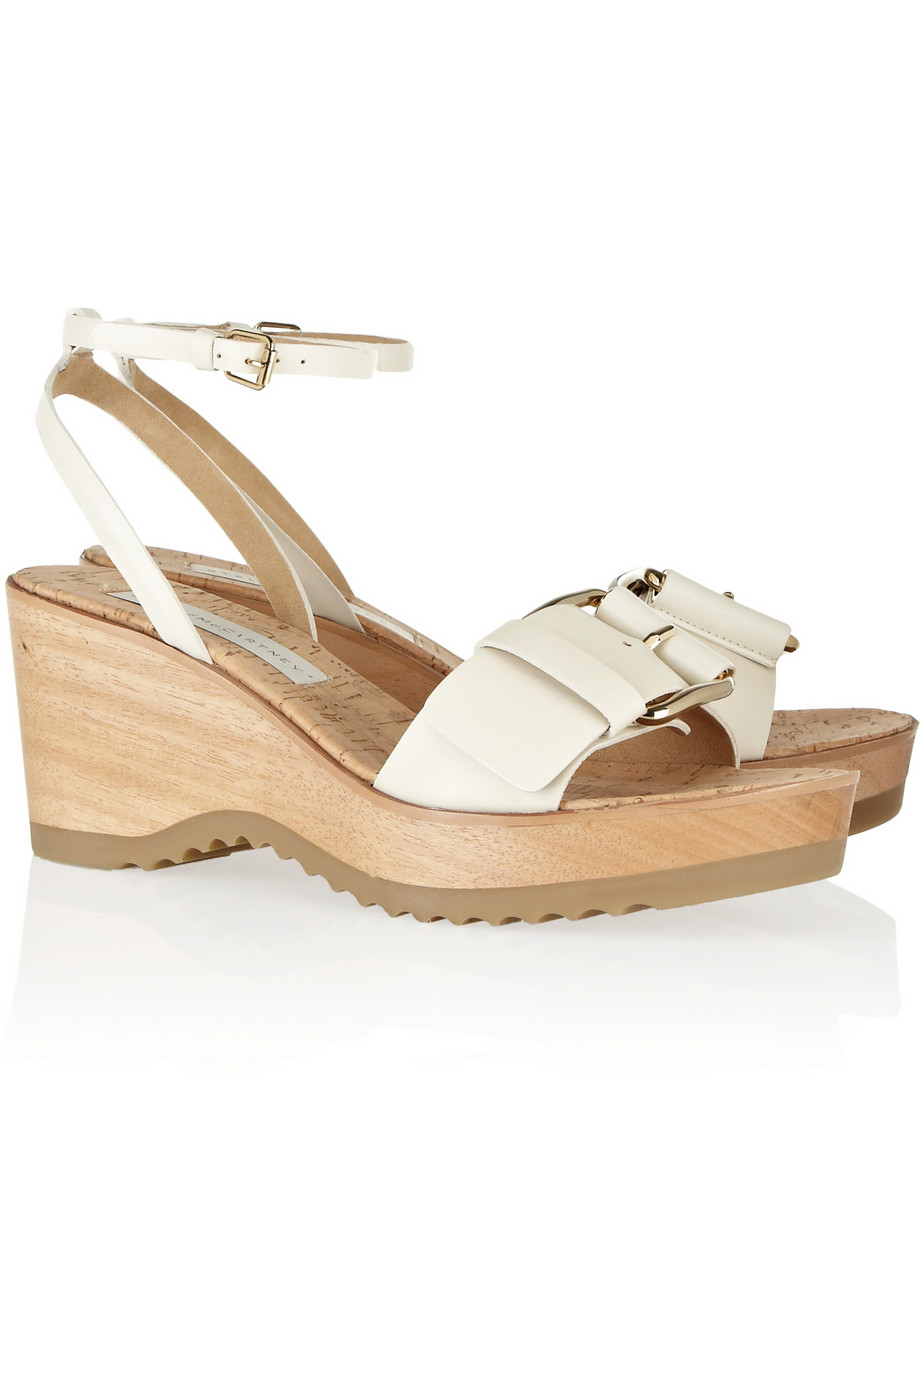 e3168894258 Lyst - Stella Mccartney Faux Leather and Wooden Wedge Sandals in Natural